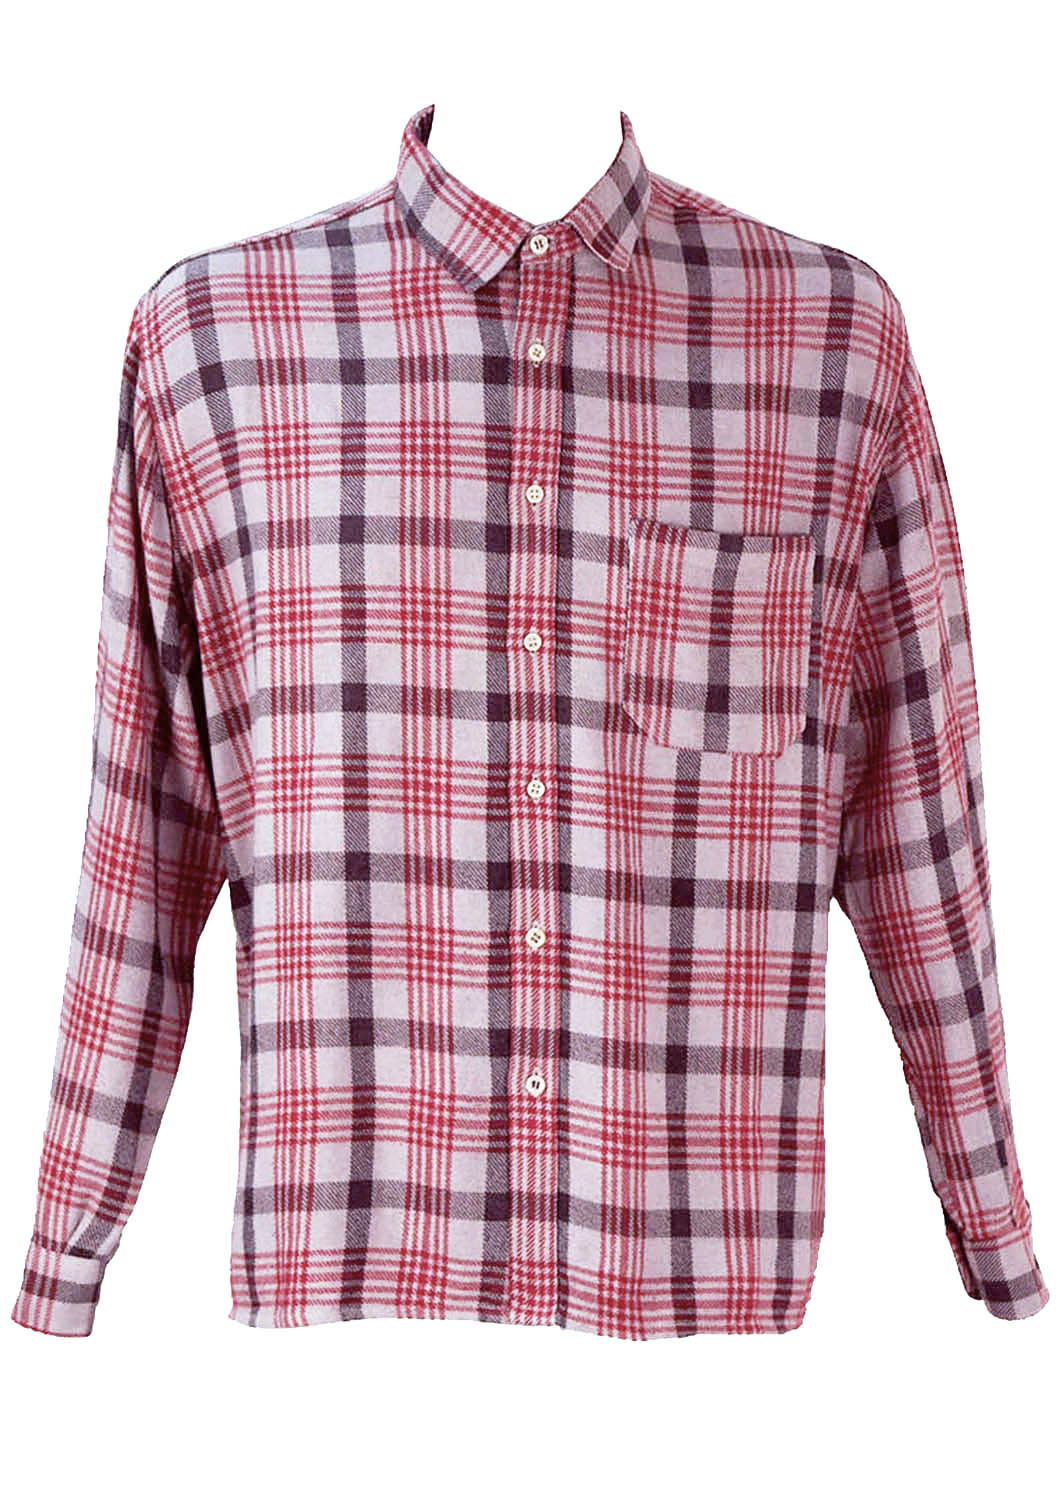 Red And Grey Prince Of Wales Check Flannel Shirt Xl Xxl